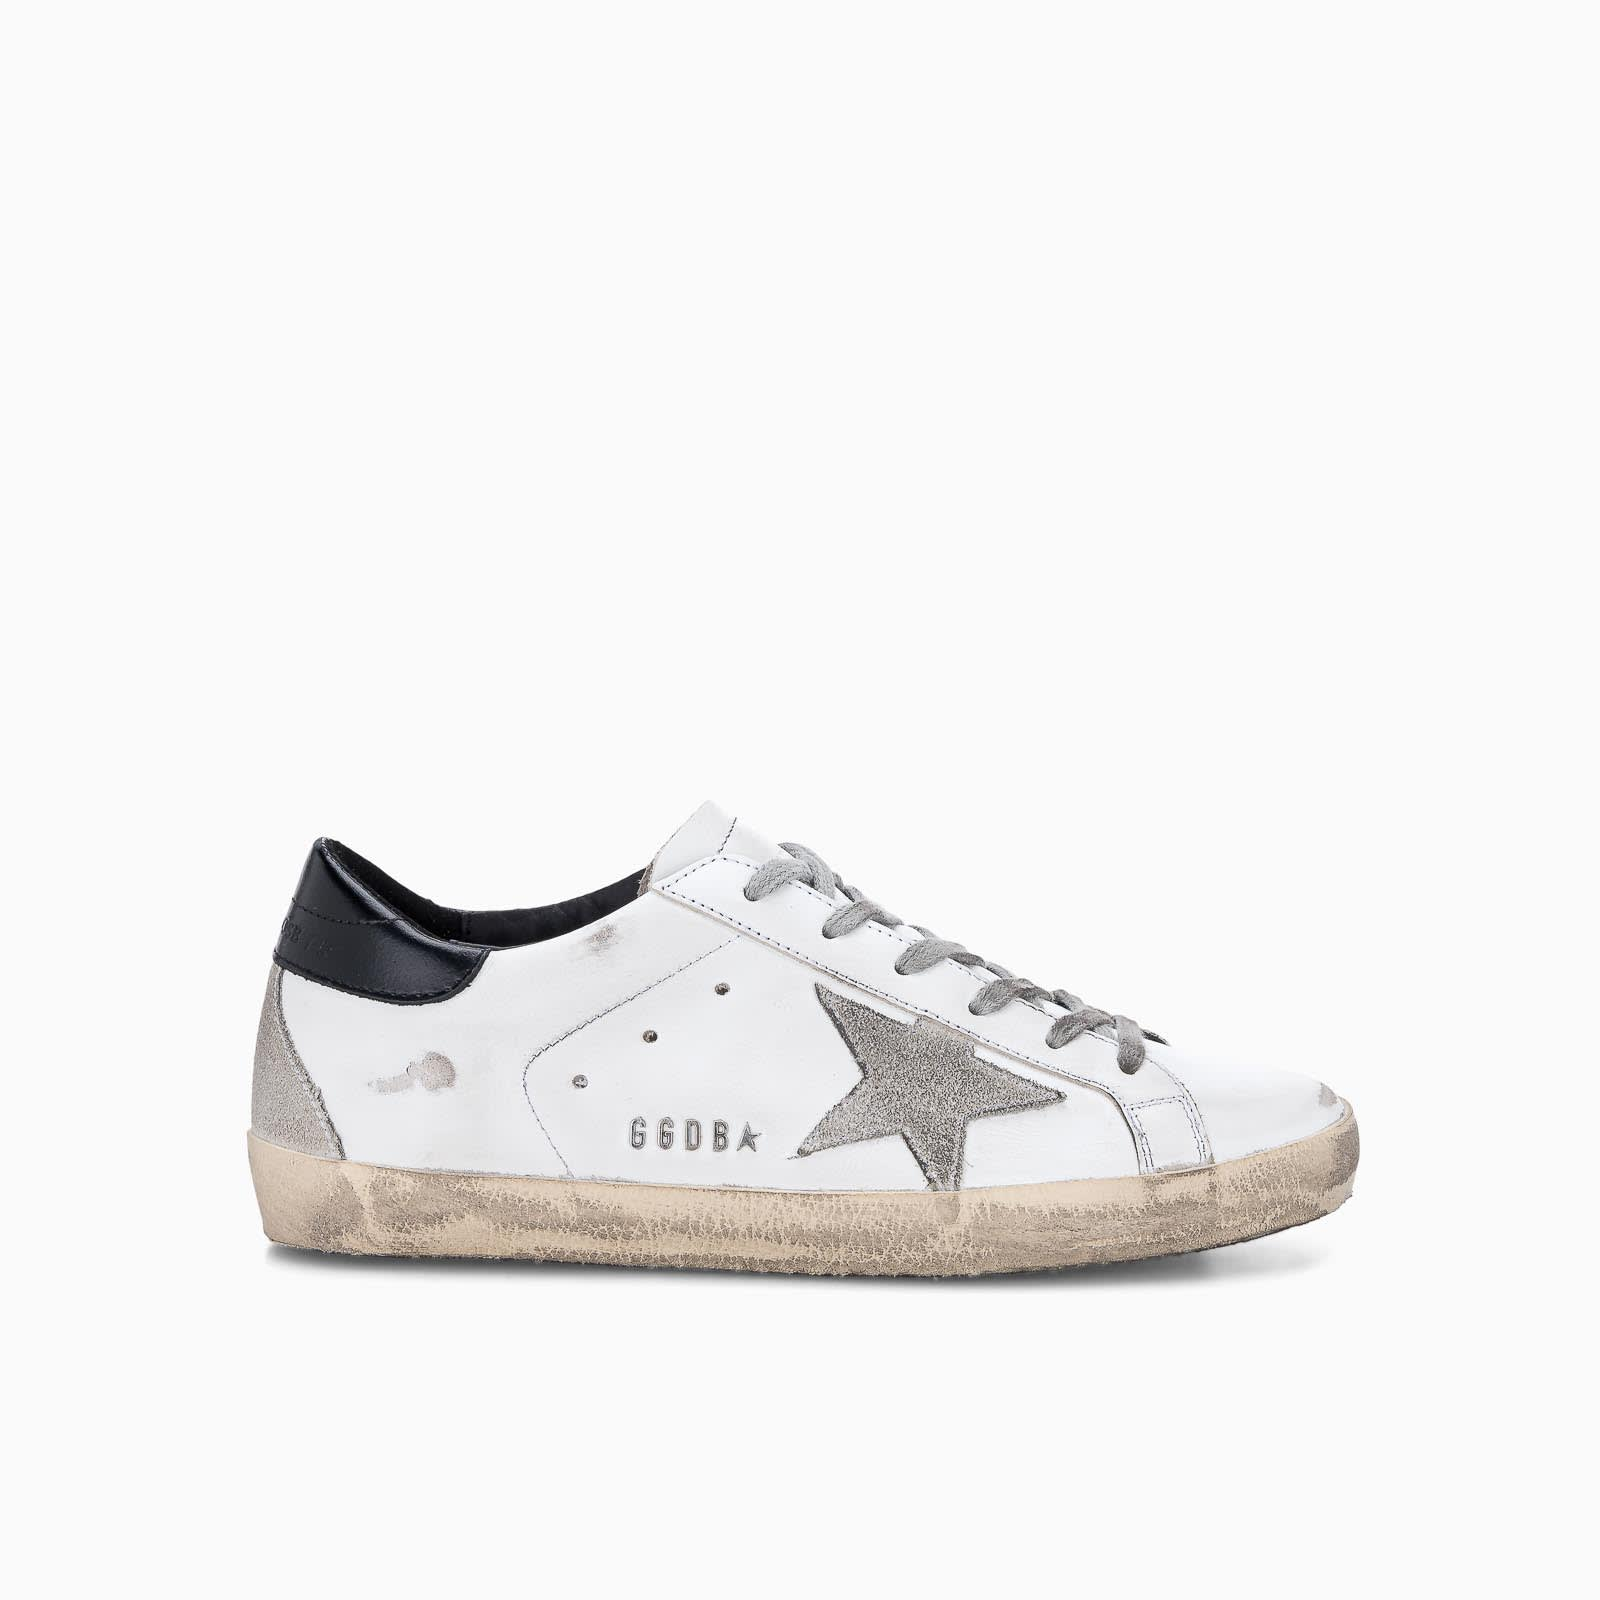 Golden Goose Superstar In White Ice Black